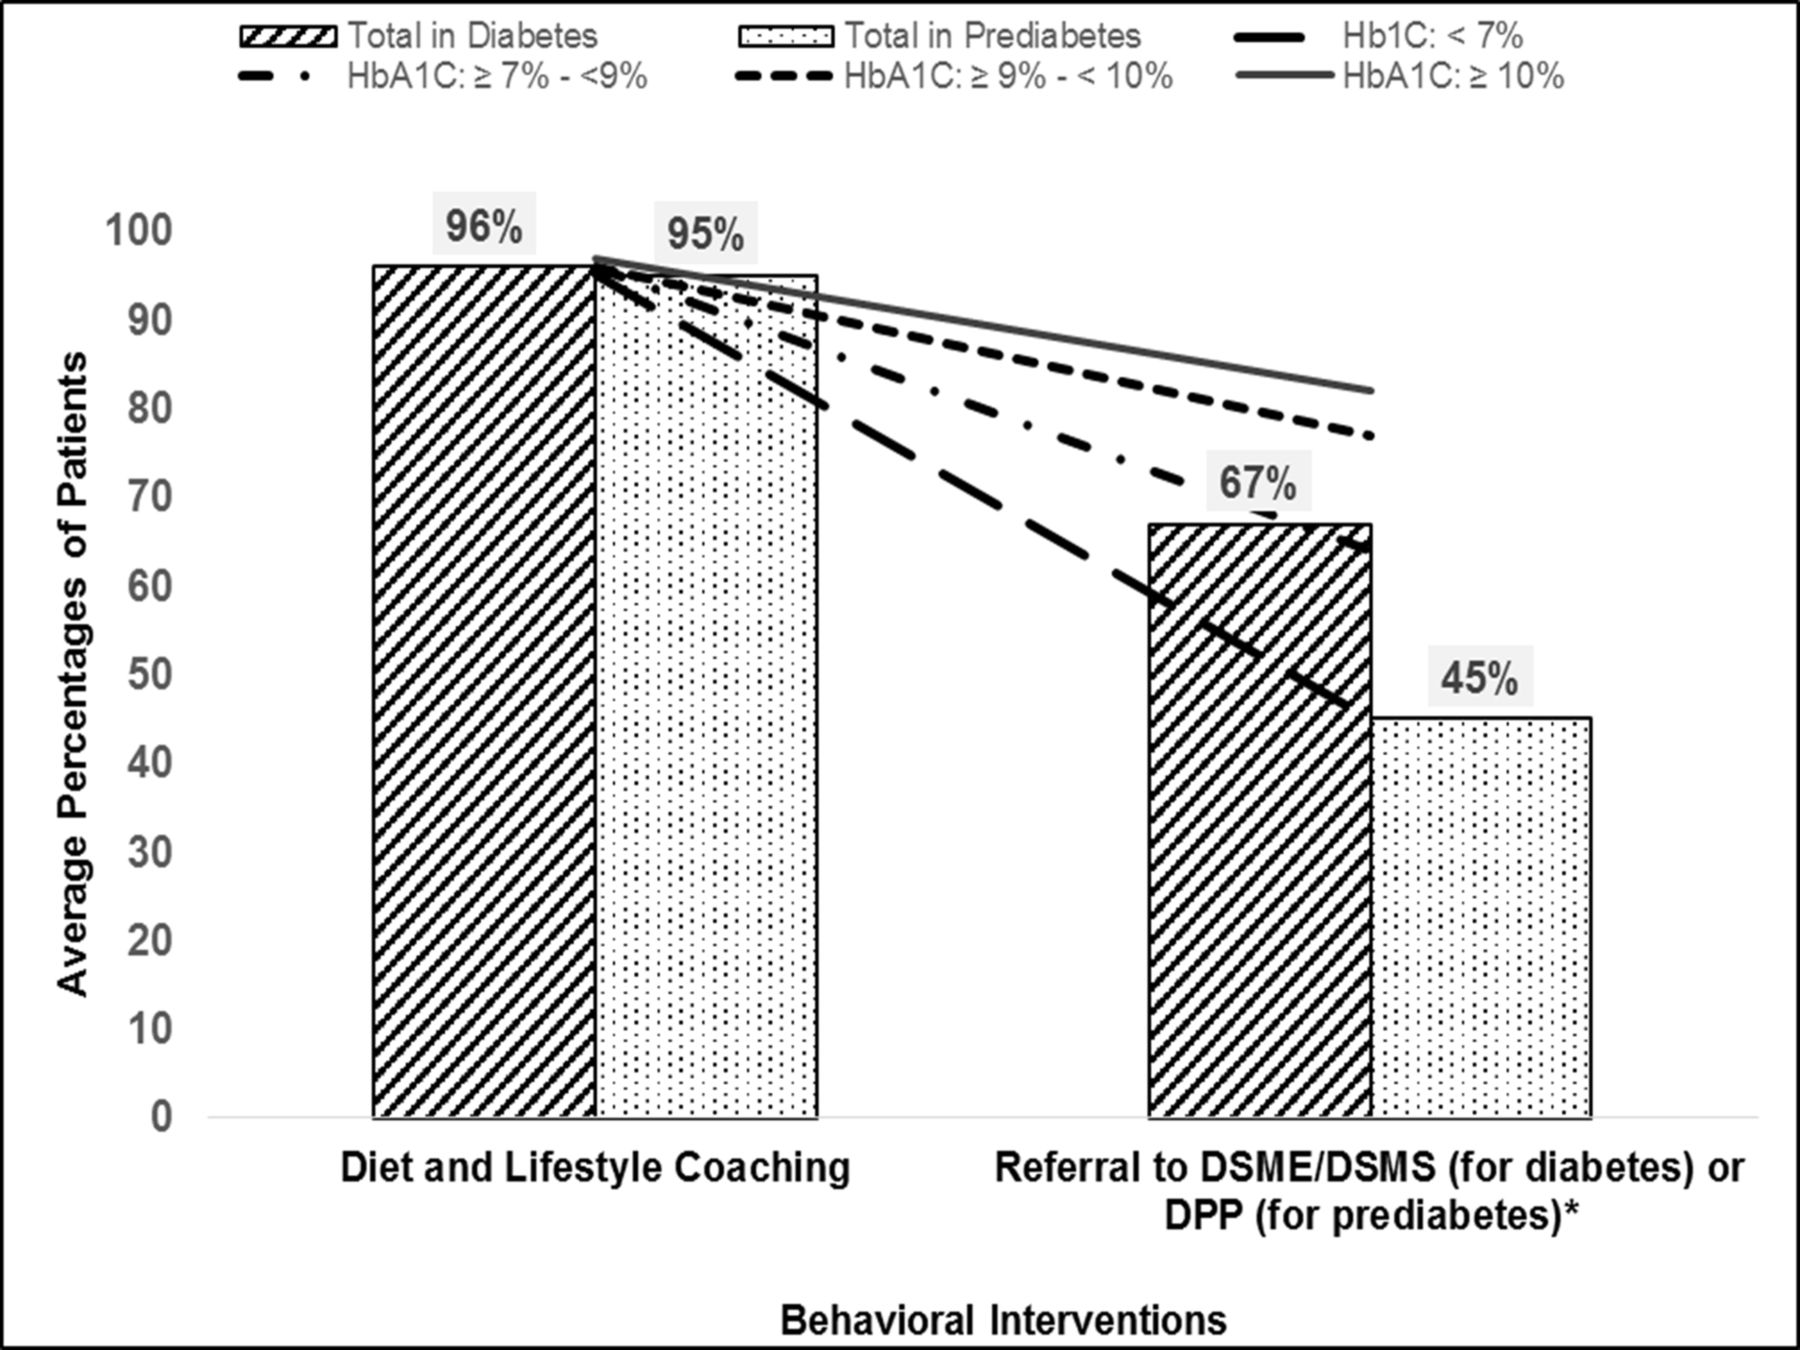 Primary care physicians' utilization of type 2 diabetes screening